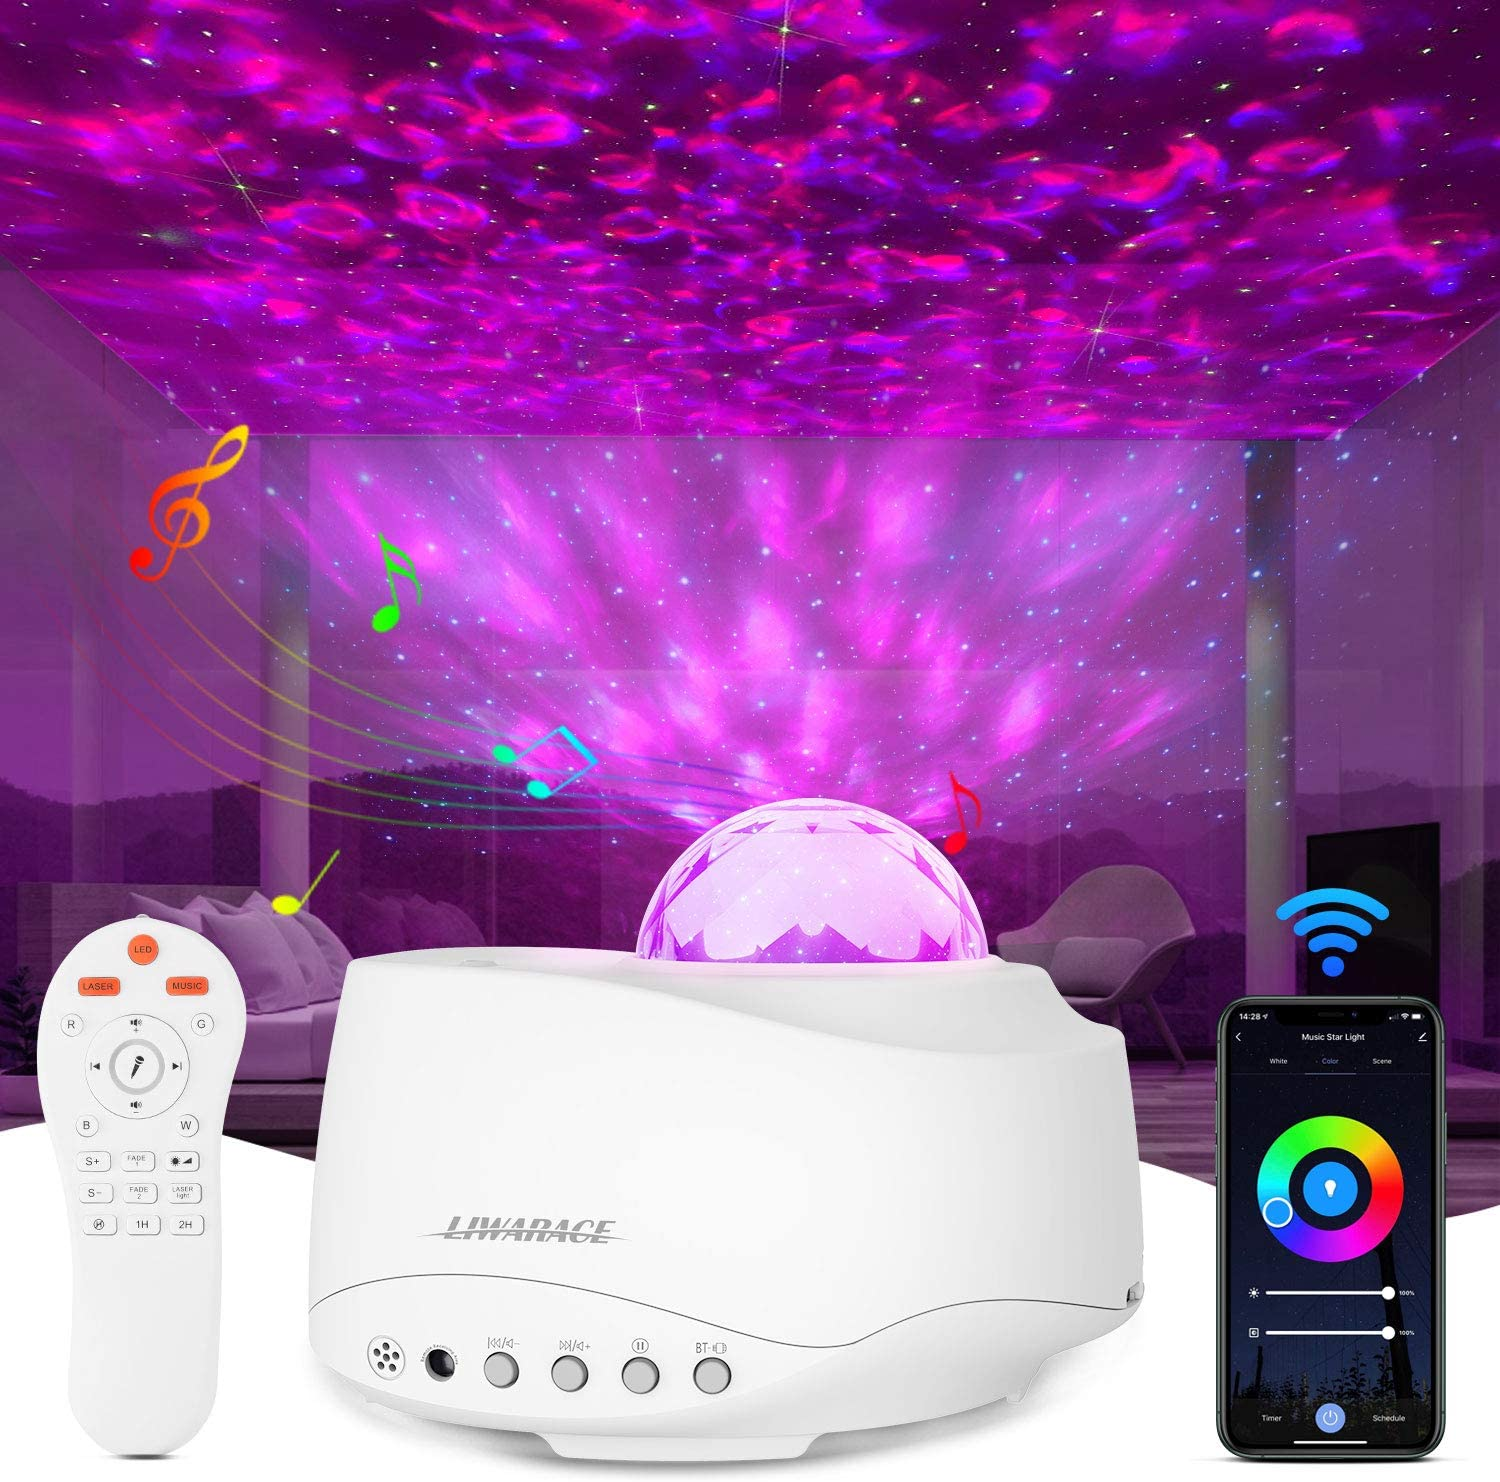 Star Projector Night Light,Htwon Galaxy Projector for Kids Bedroom Adults with Music Speaker & Remote Control Work with Alexa Google Home Nebula Sky Light Projector for Ceiling